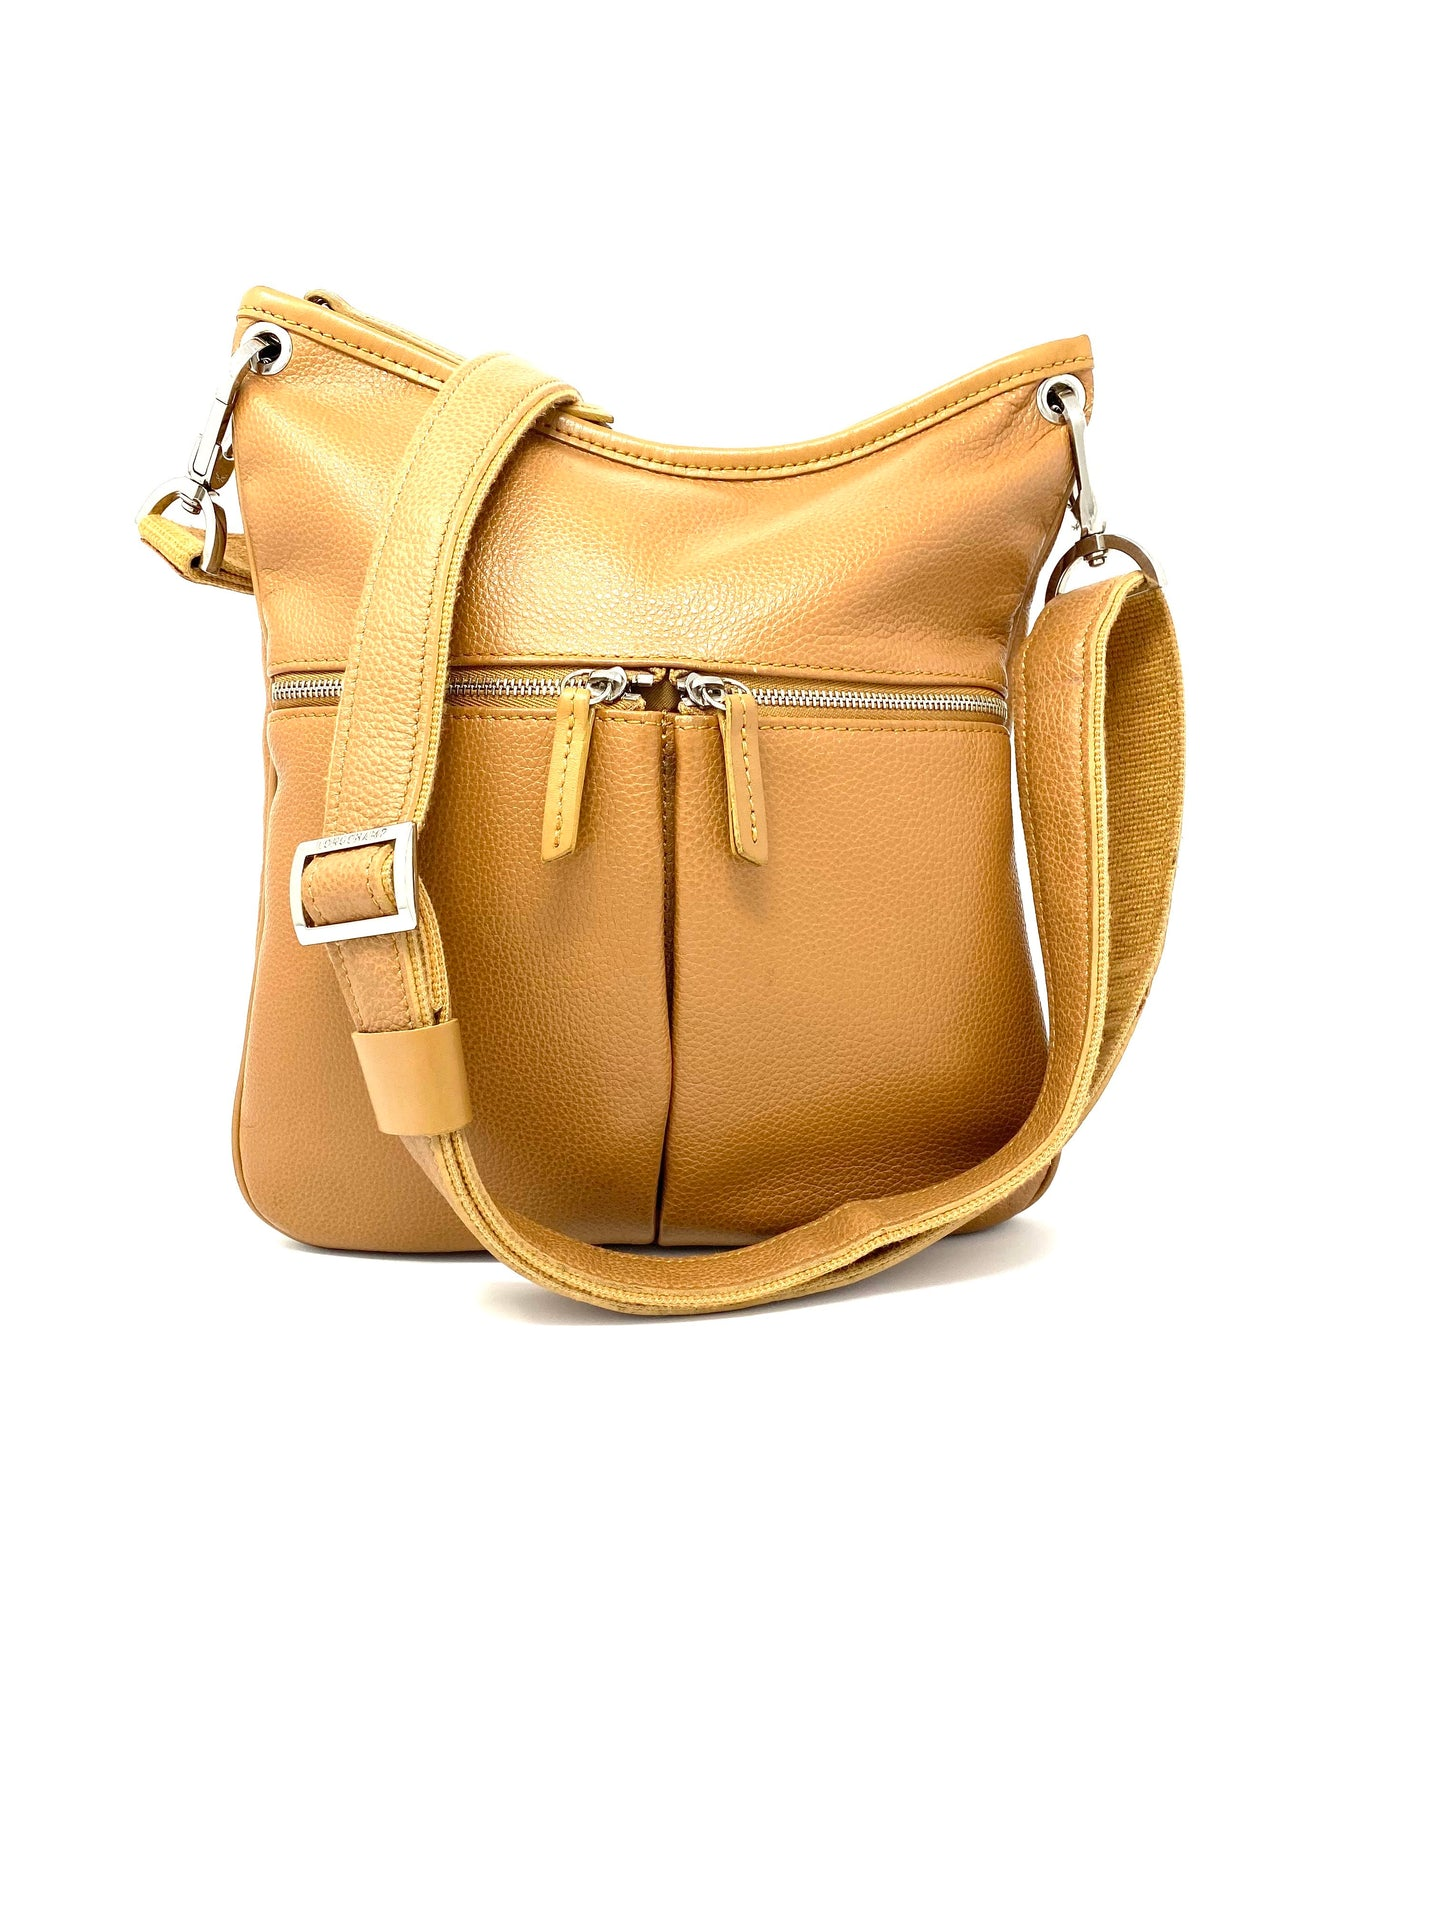 Butterscotch Longchamp Bag